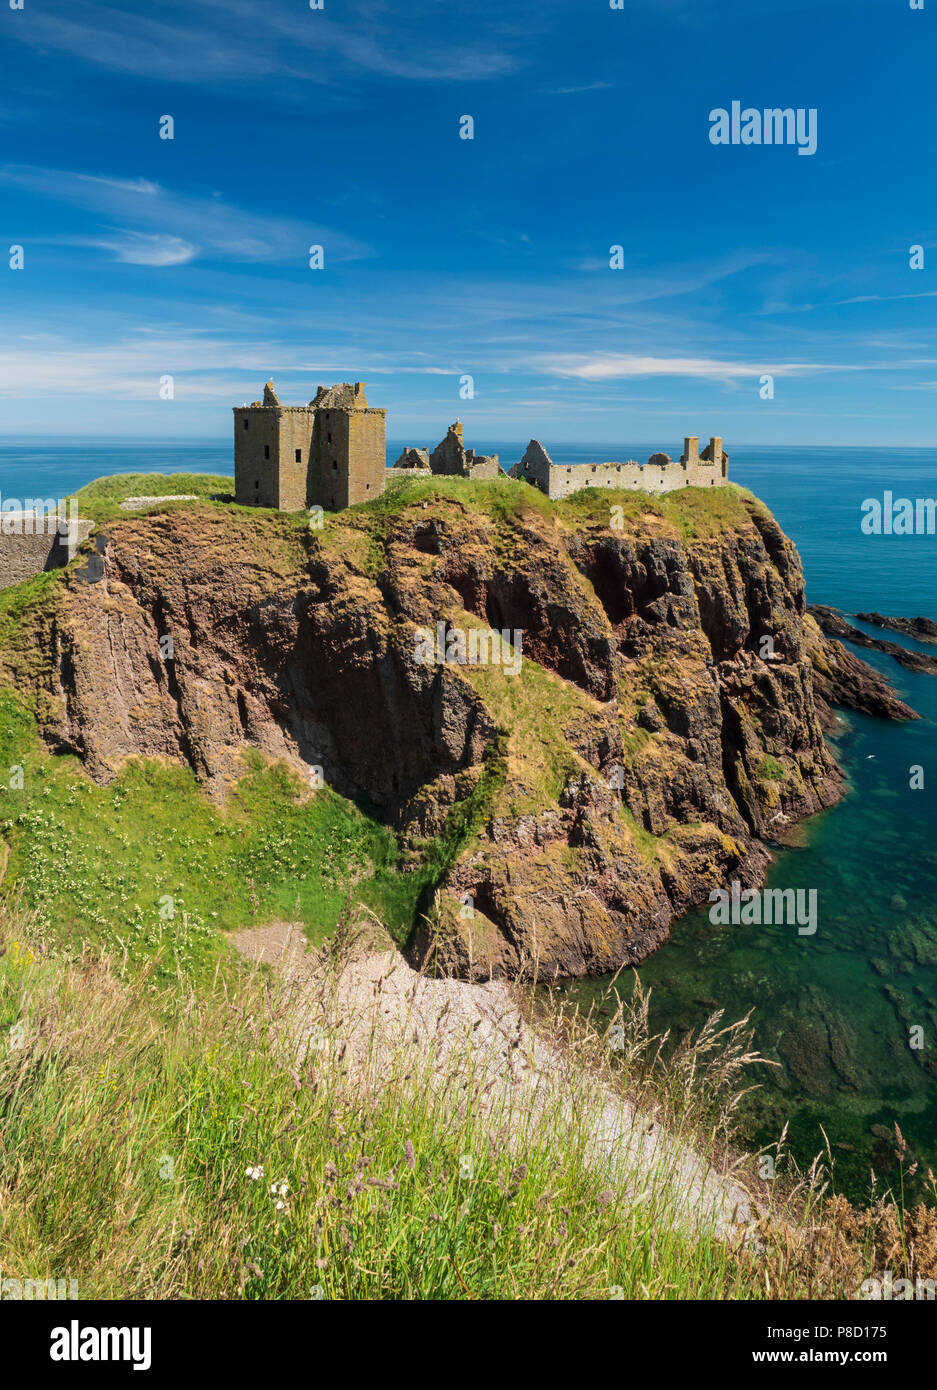 Dunottar Castle, Stonehaven, Aberdeenshire - one of Scotland's most identifiable strongholds, built in the 15th and 1y6th centuries. View with the cov Stock Photo